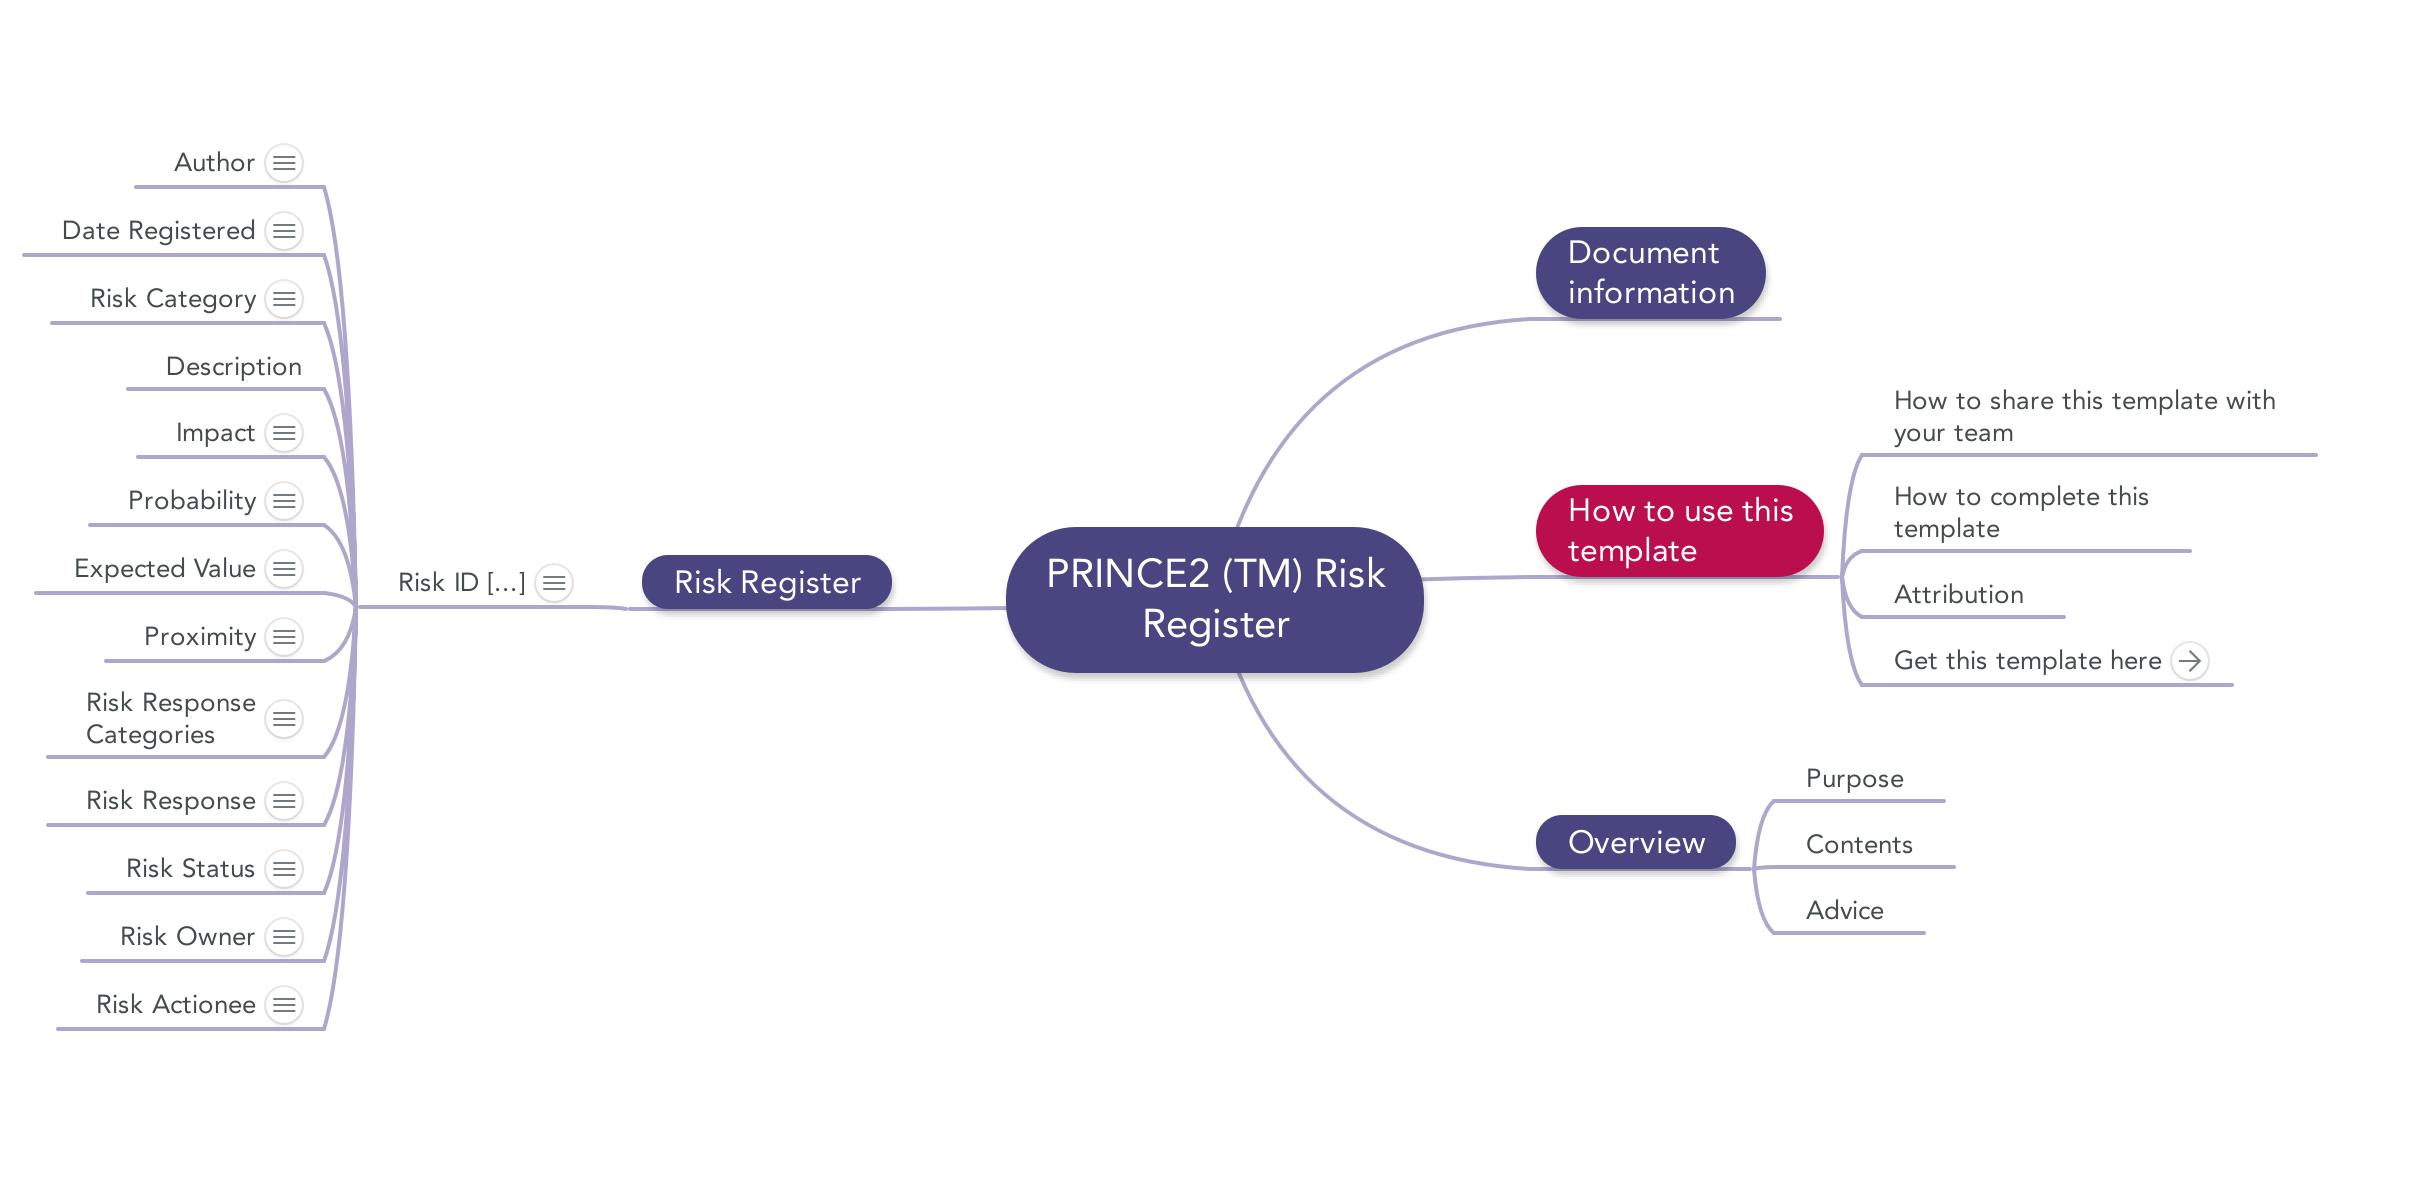 prince2 risk register download template